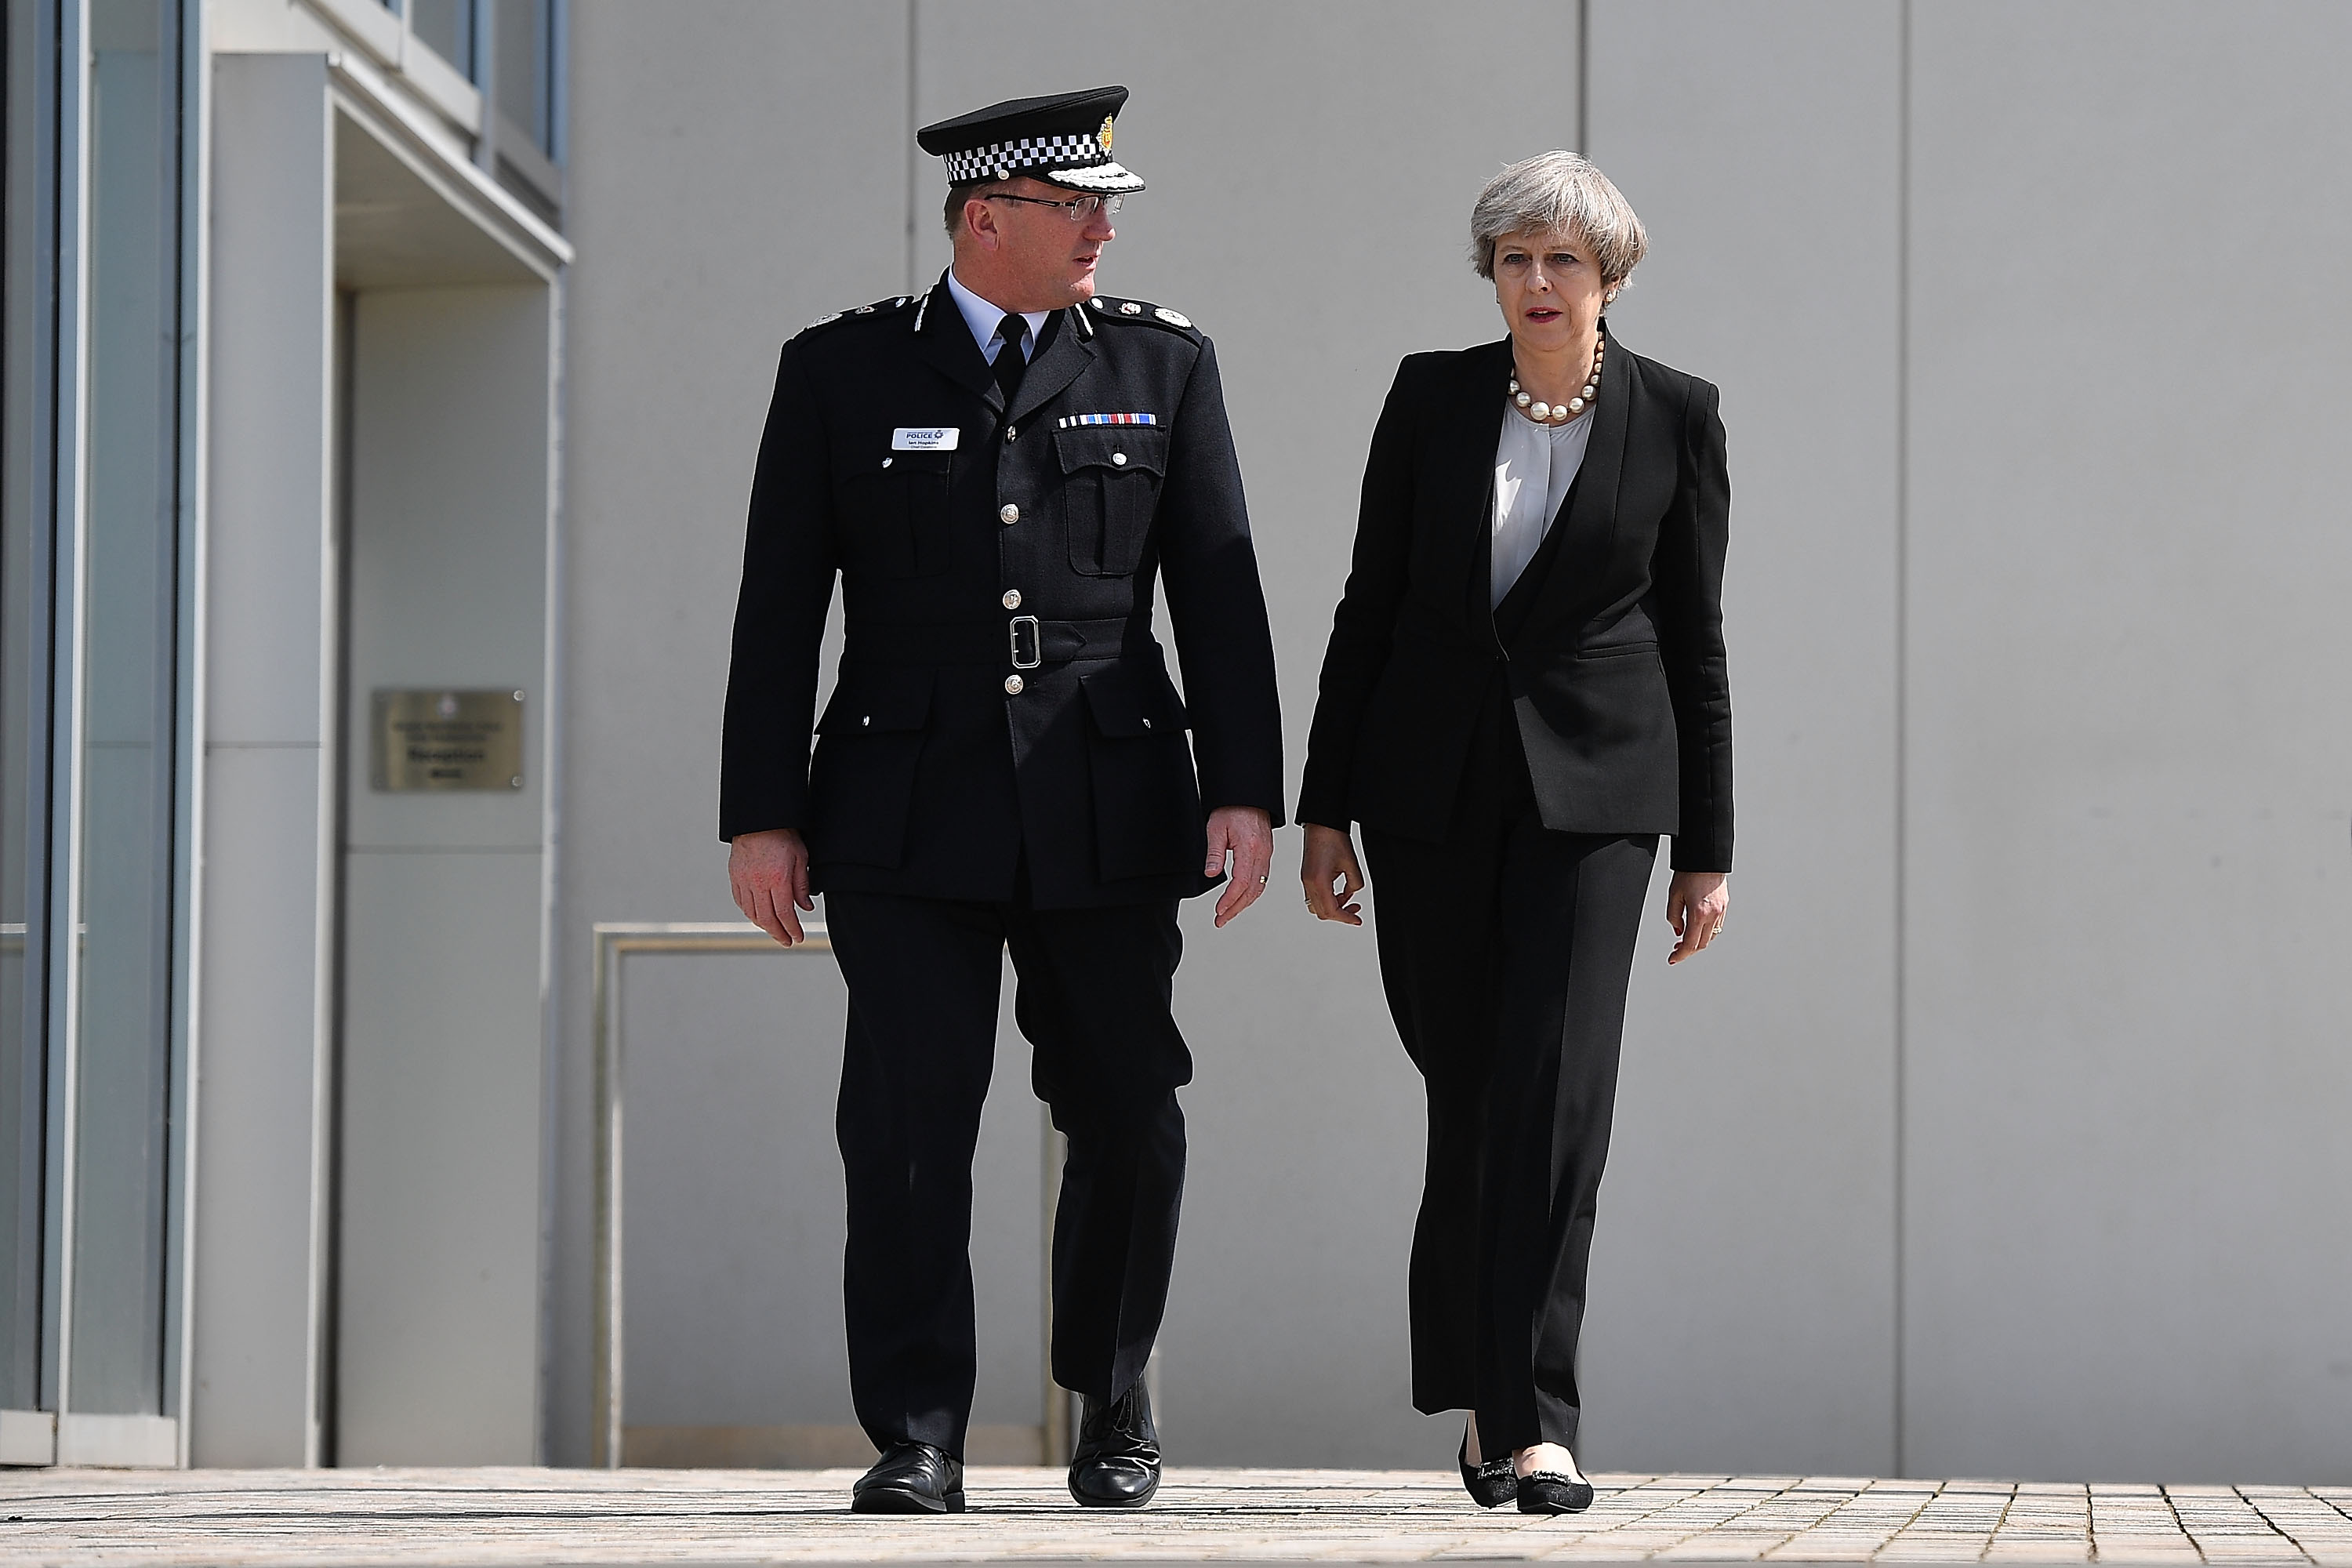 Britain's Prime Minister Theresa May talks with Chief Constable of Greater Manchester Police Ian Hopkins as they leave the Greater Manchester Police station on May 23, 2017 in Manchester, England.